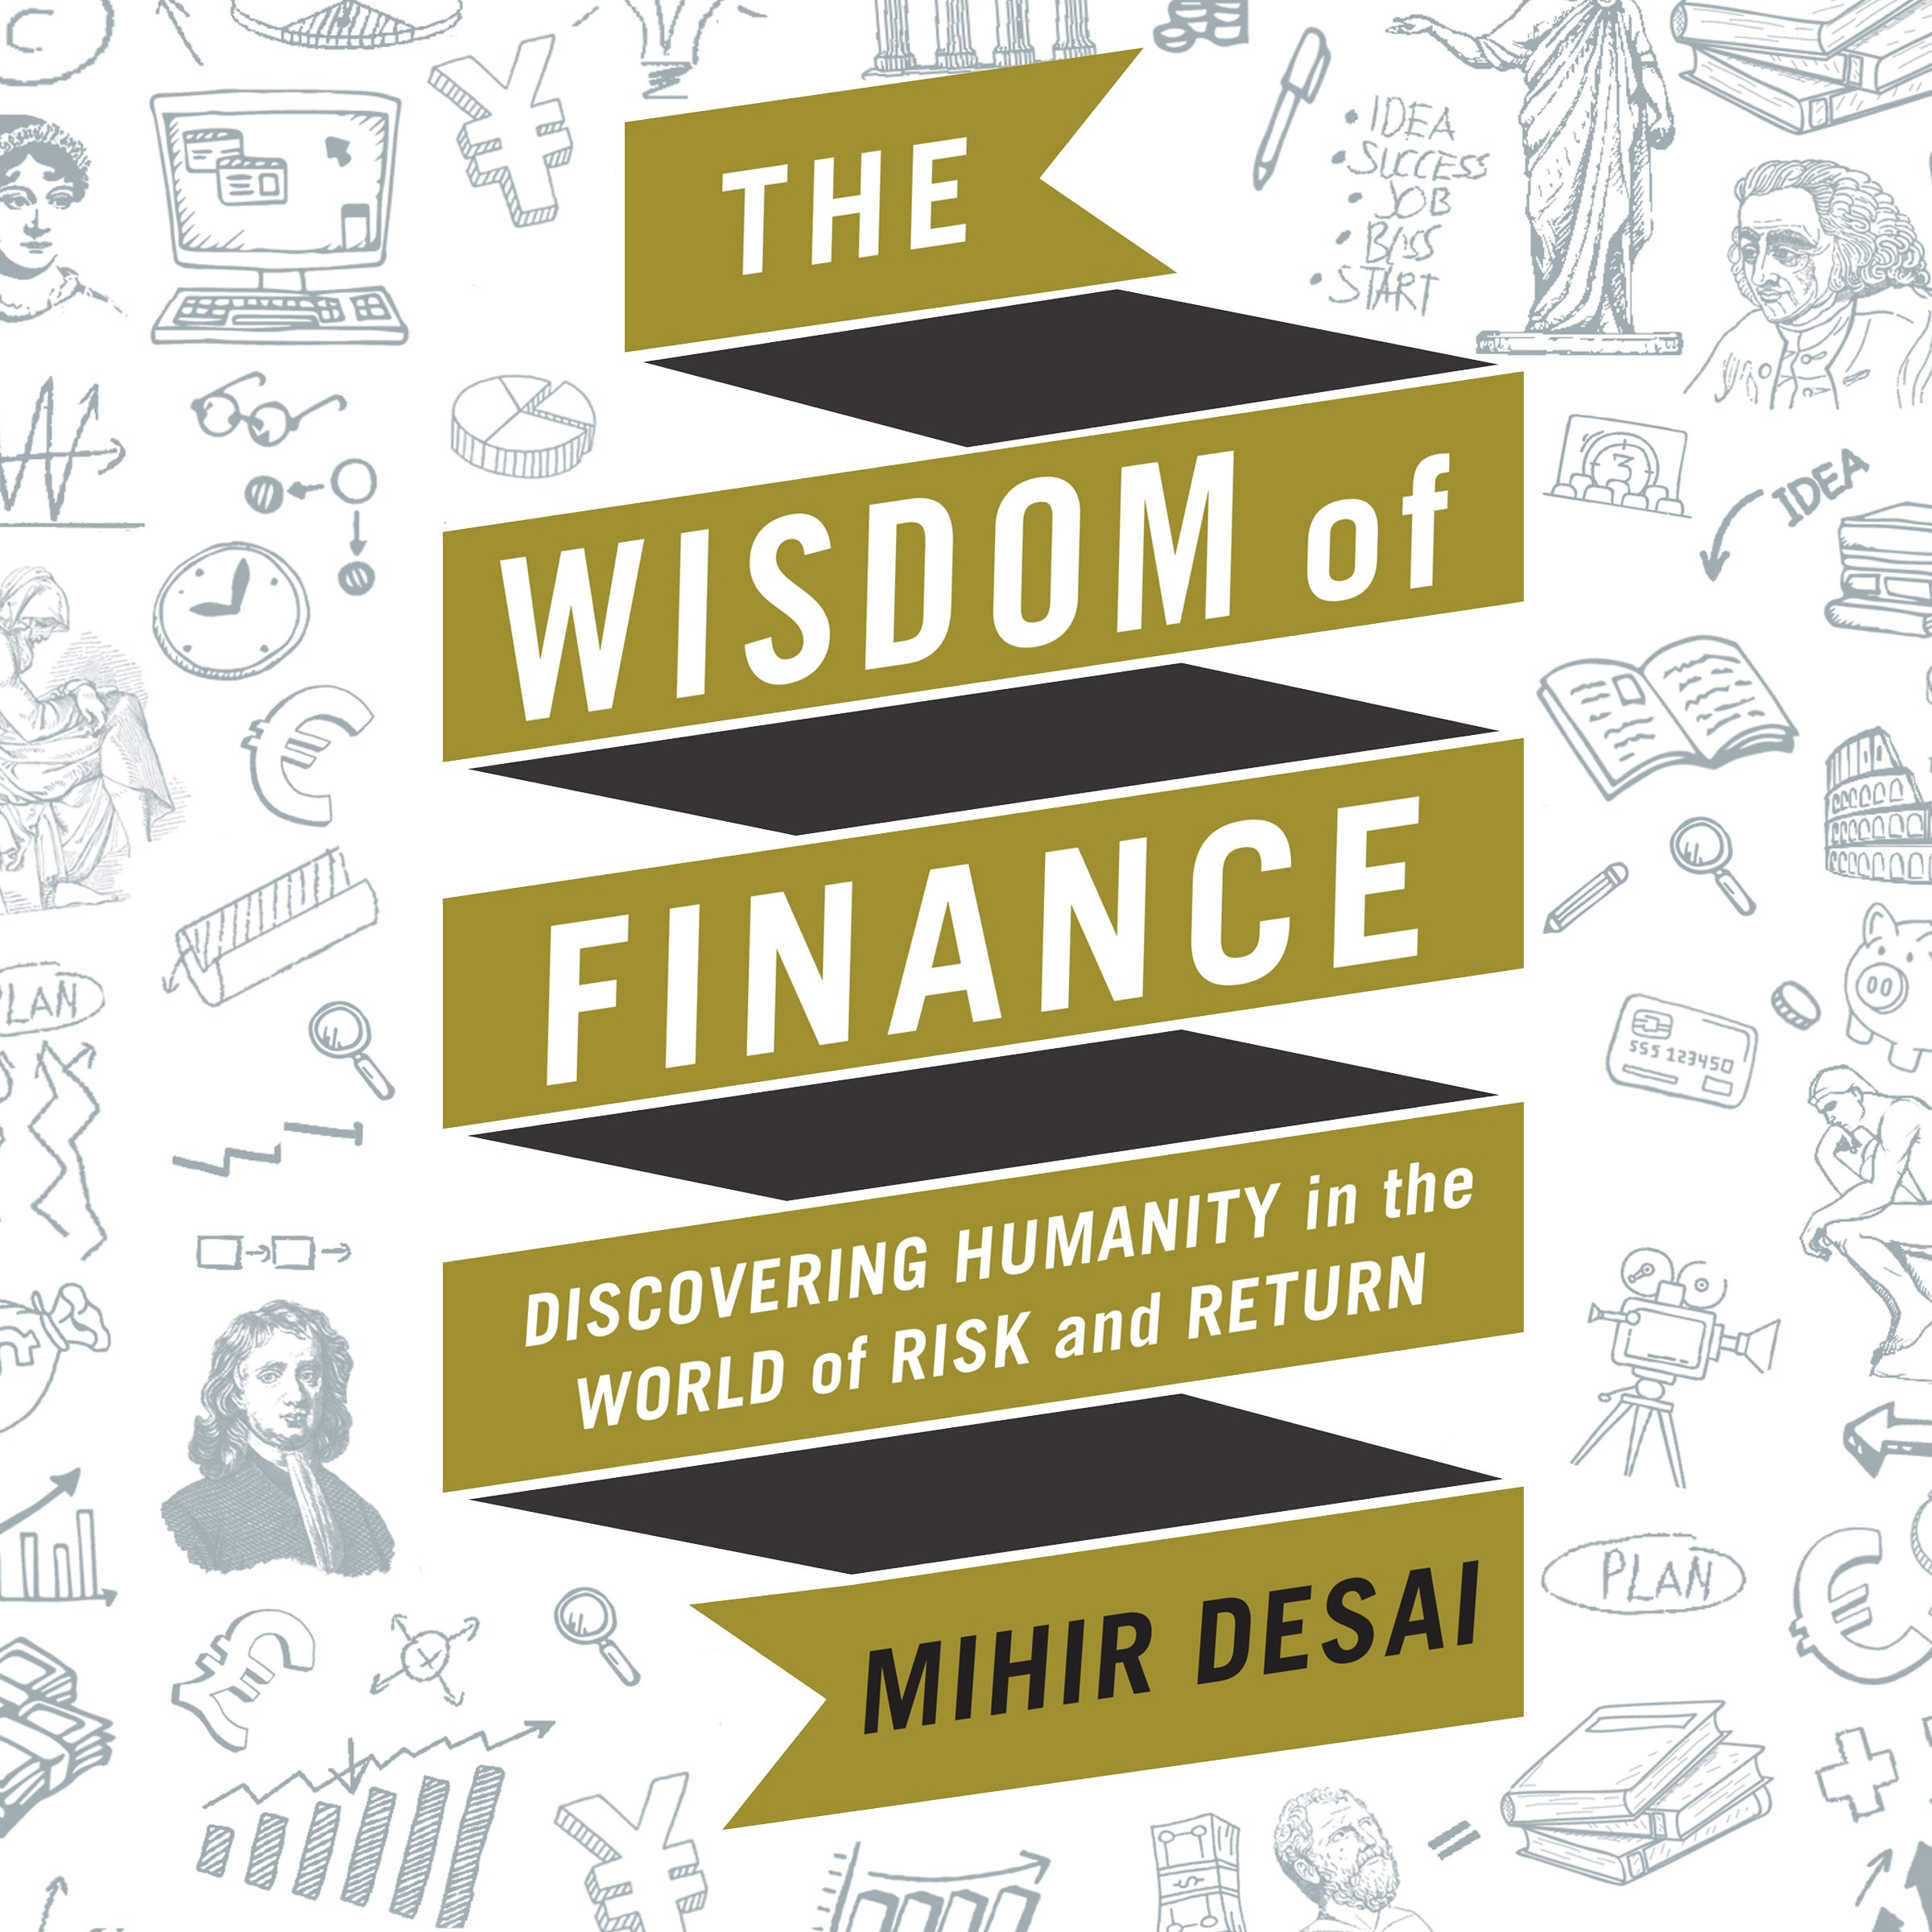 The Wisdom Of Finance  Discovering Humanity In The World Of Risk And Return